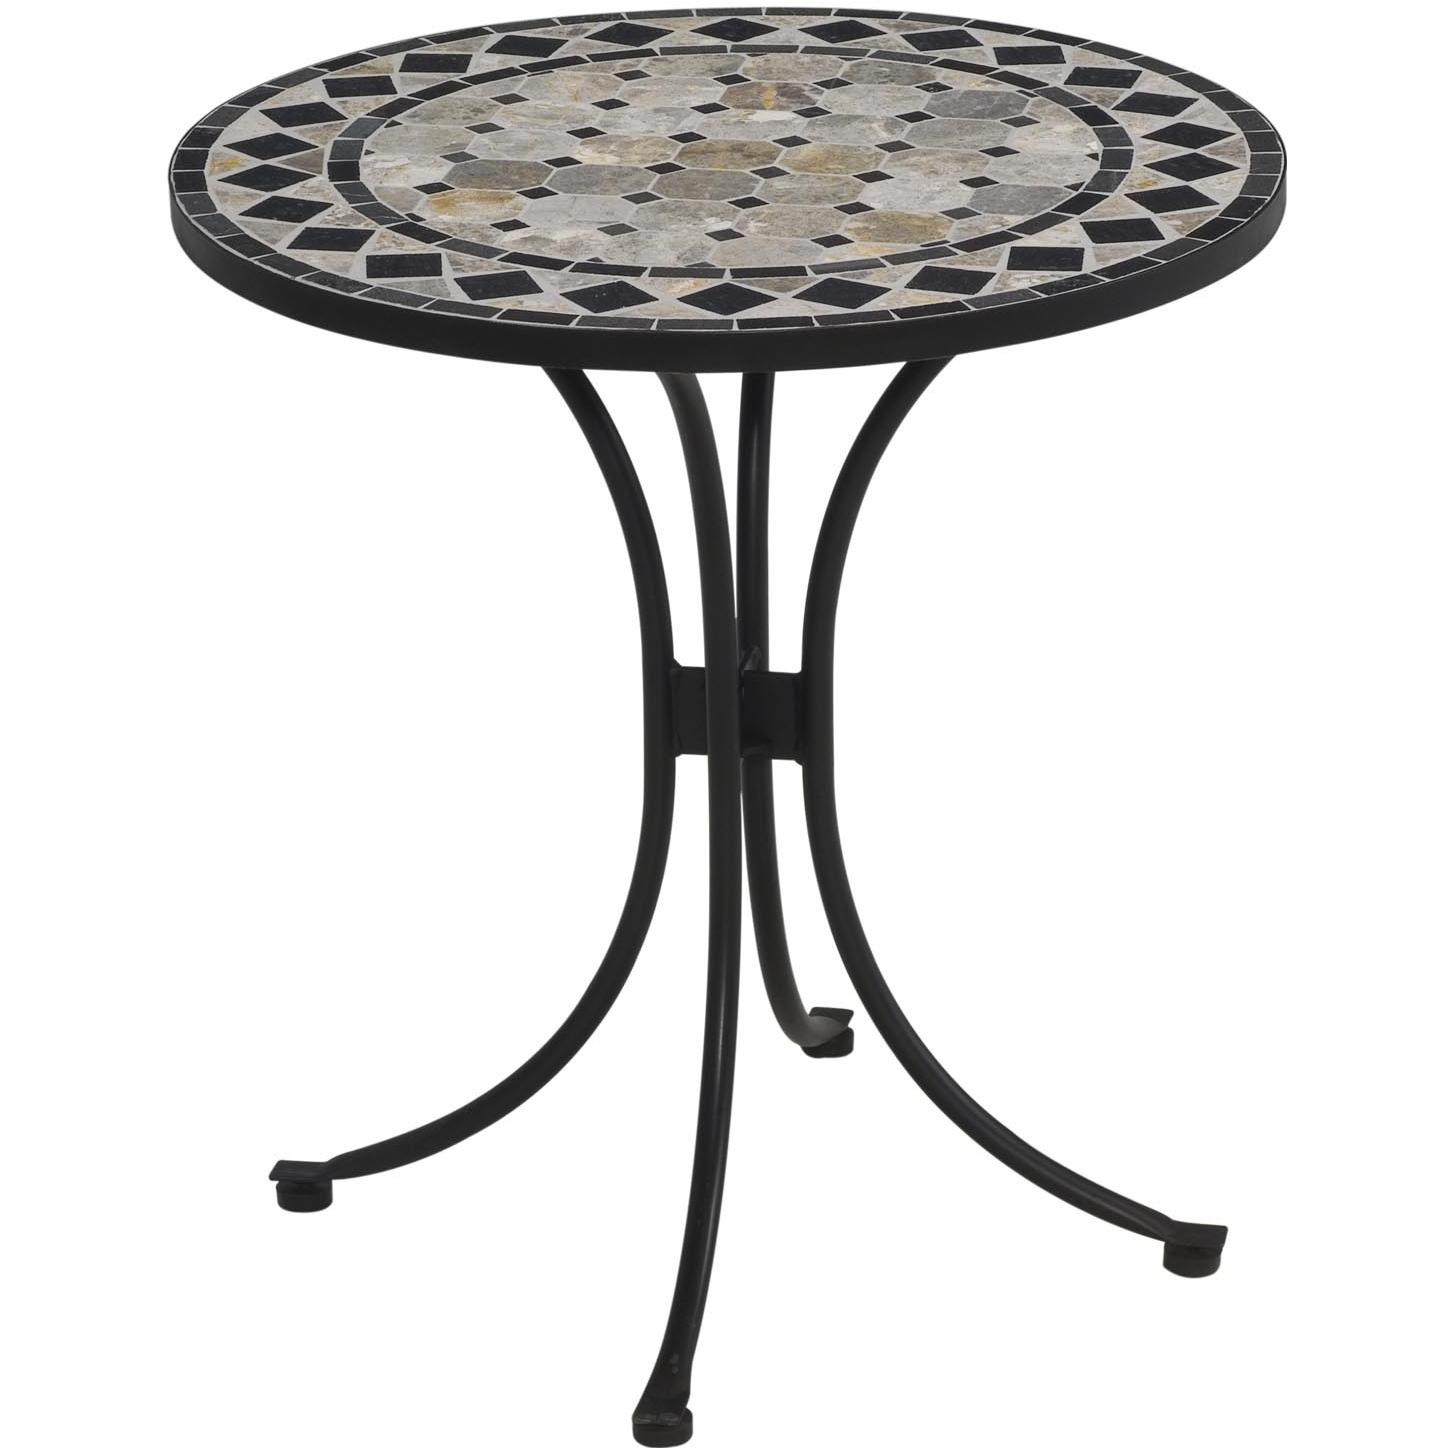 Home Styles Black Marble Mosaic Patio Bistro Table - Black at Sears.com